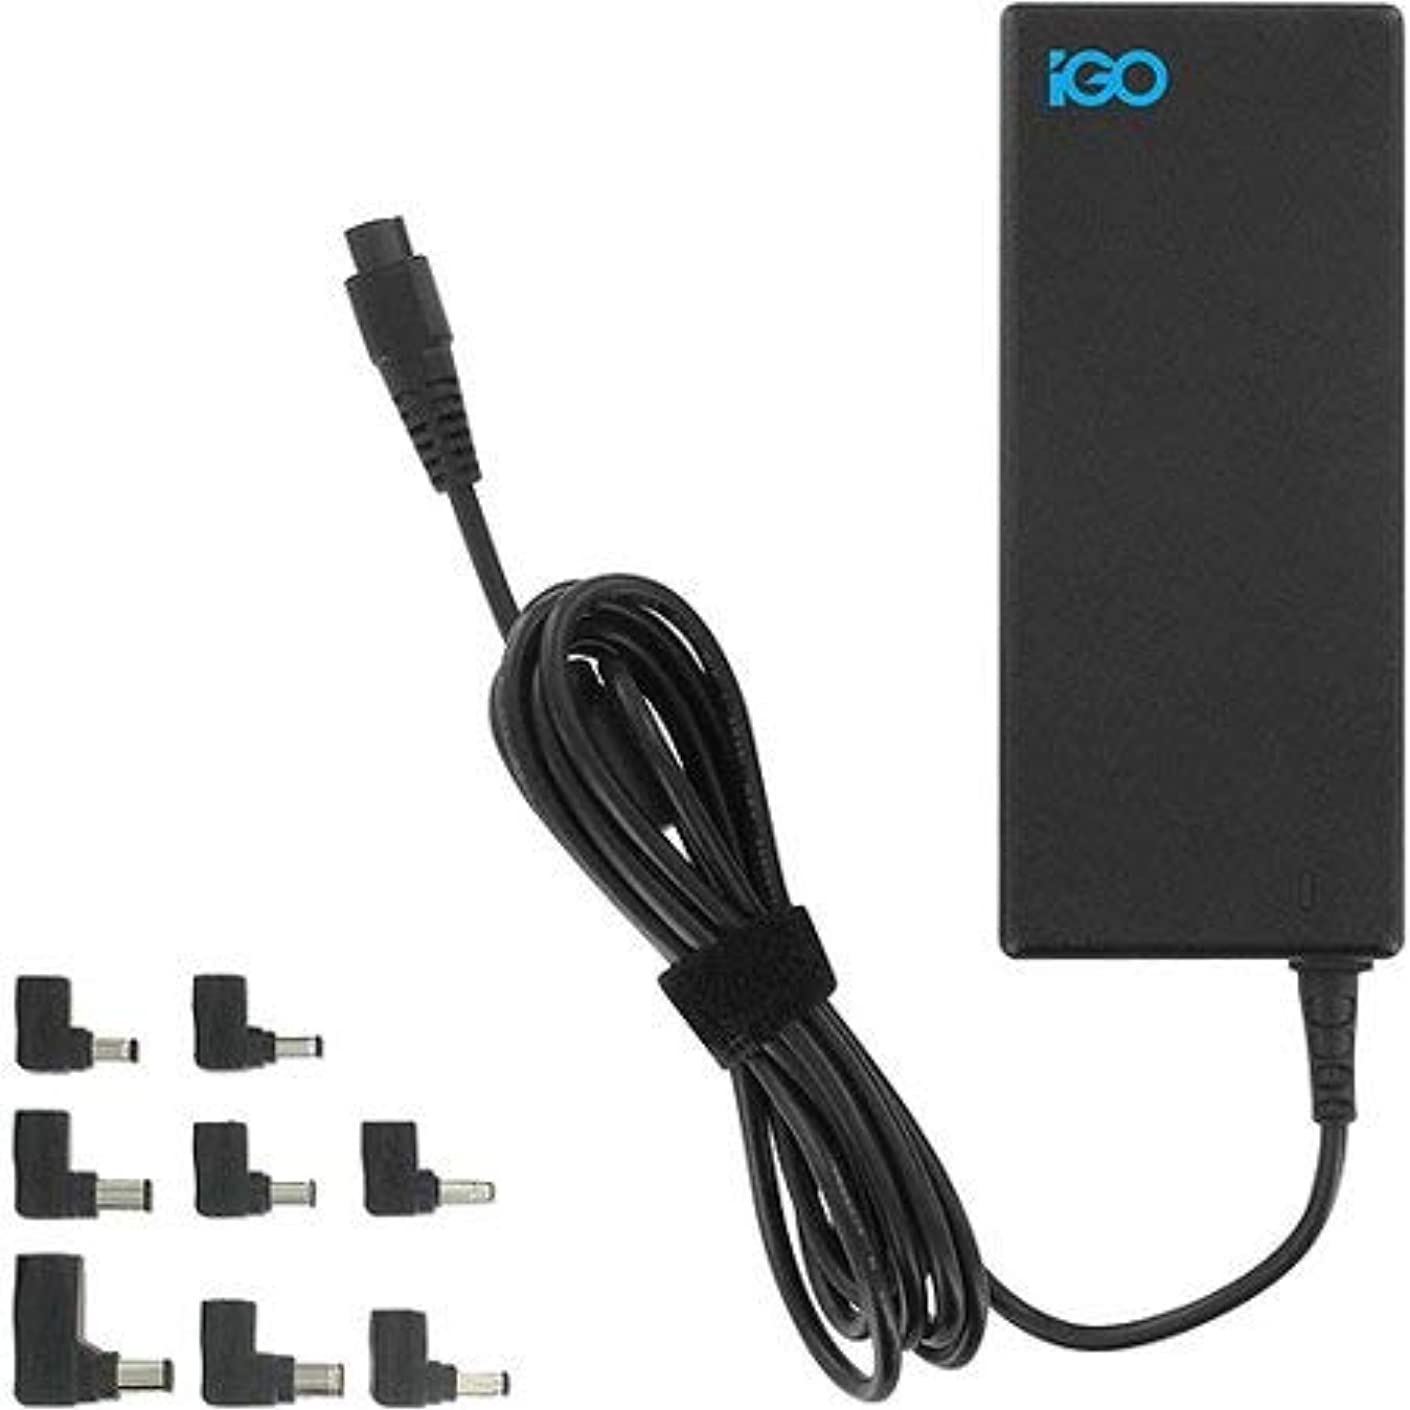 IGO Universal Laptop Charger with a 90W Strong Charge and Engineered with Surge Protection Compatible with Acer, Compaq, Dell, Gateway, HP, LG, Lenovo, Sony, Toshiba and MSI